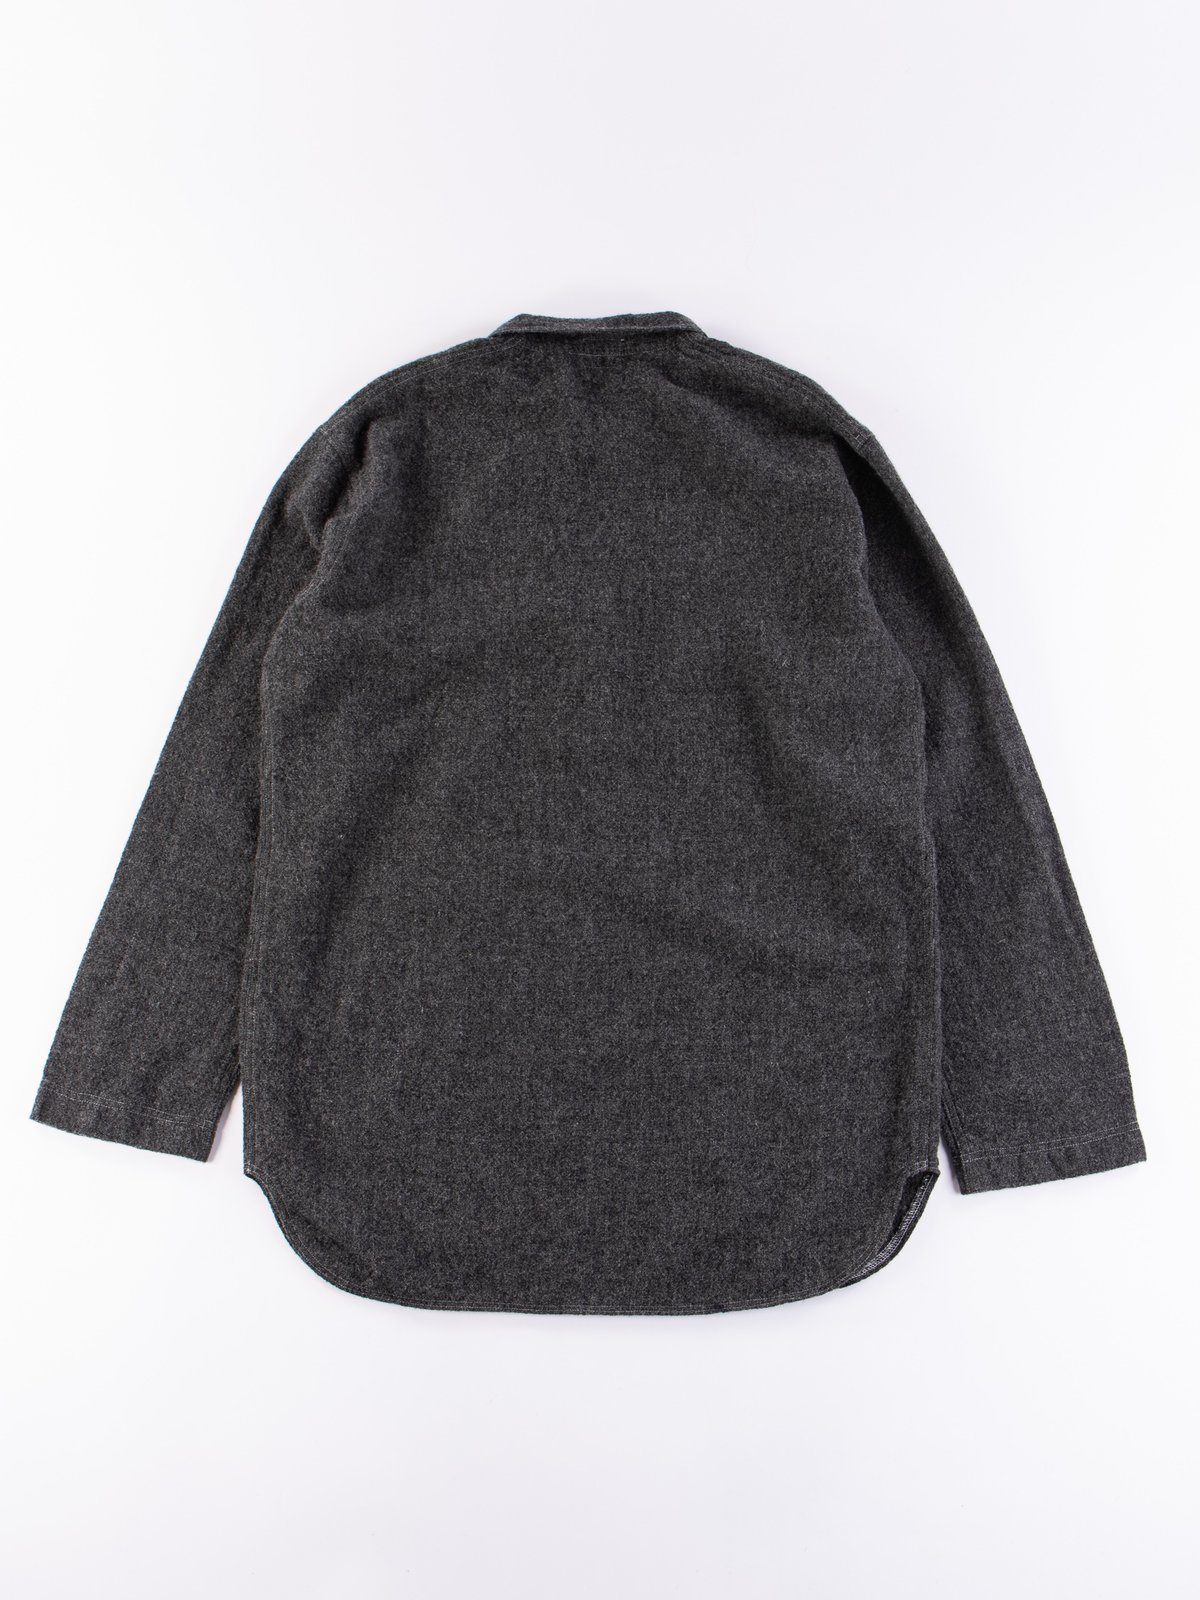 Charcoal Weavers Stock Pullover Tail Shirt - Image 5